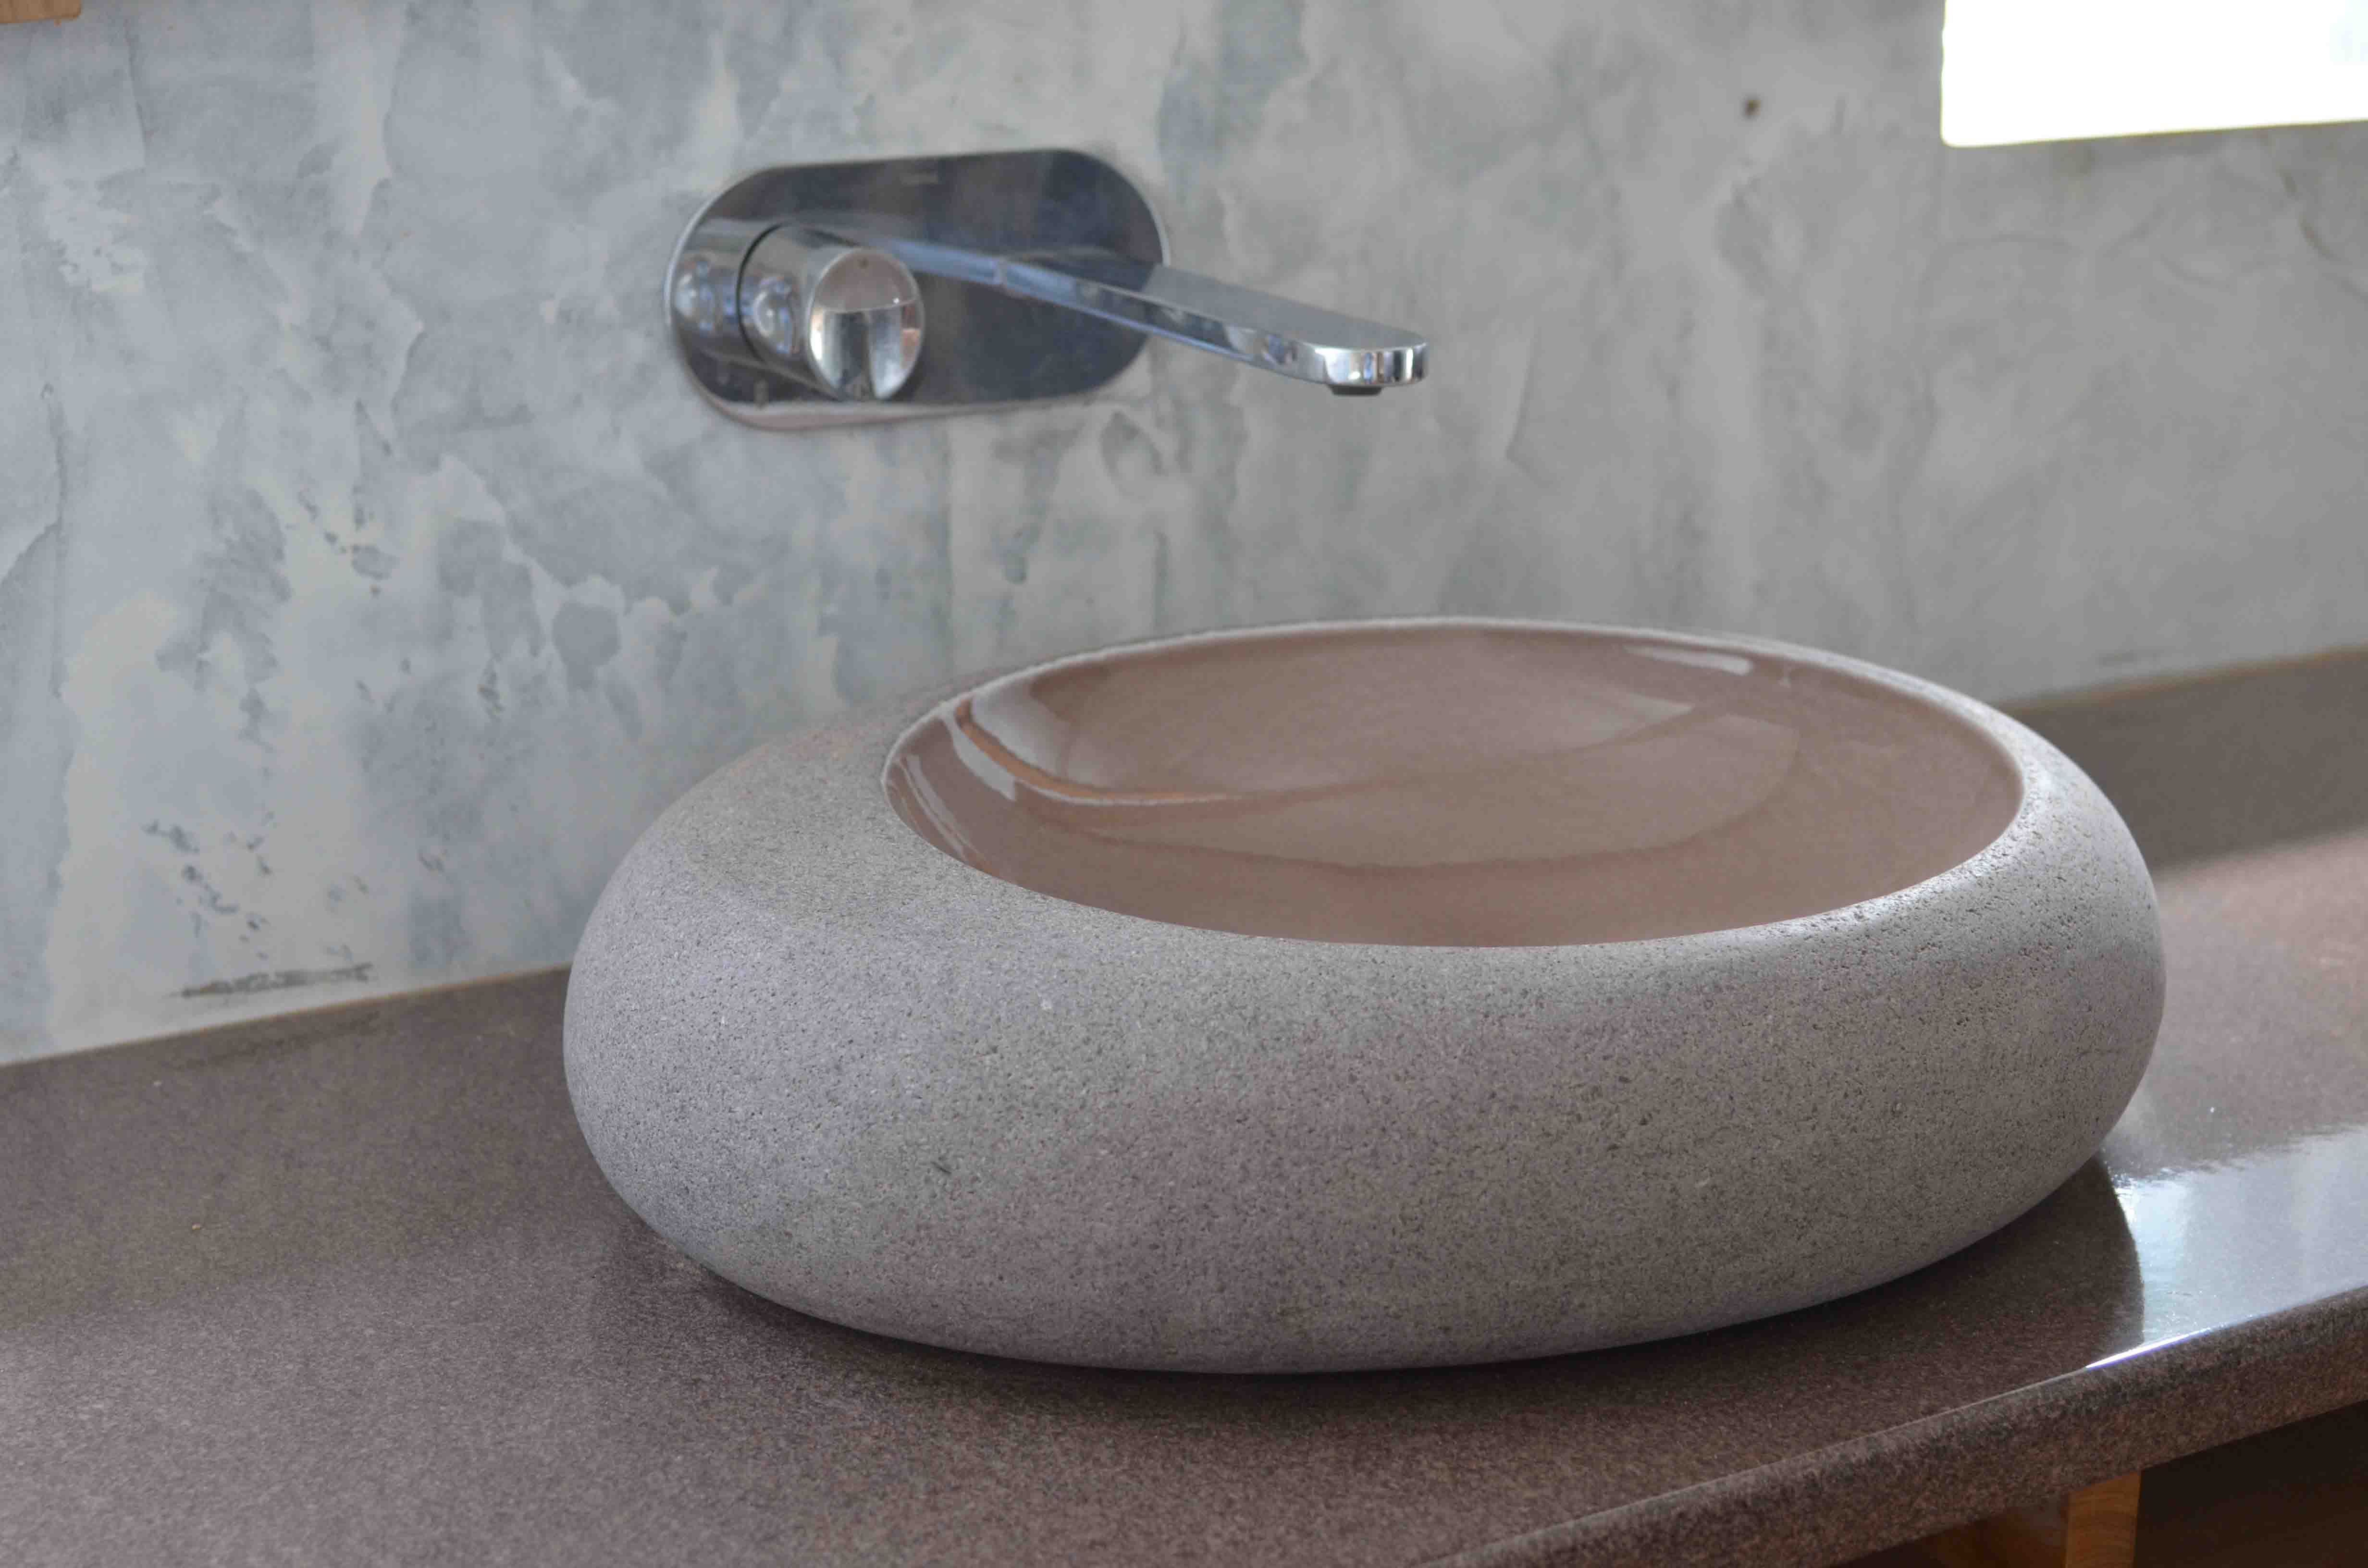 Innovation-drop-water-buble-grey-brown-bois-teak-nature-couleur-lave-volcan-émaille-céramique-France-Luxe